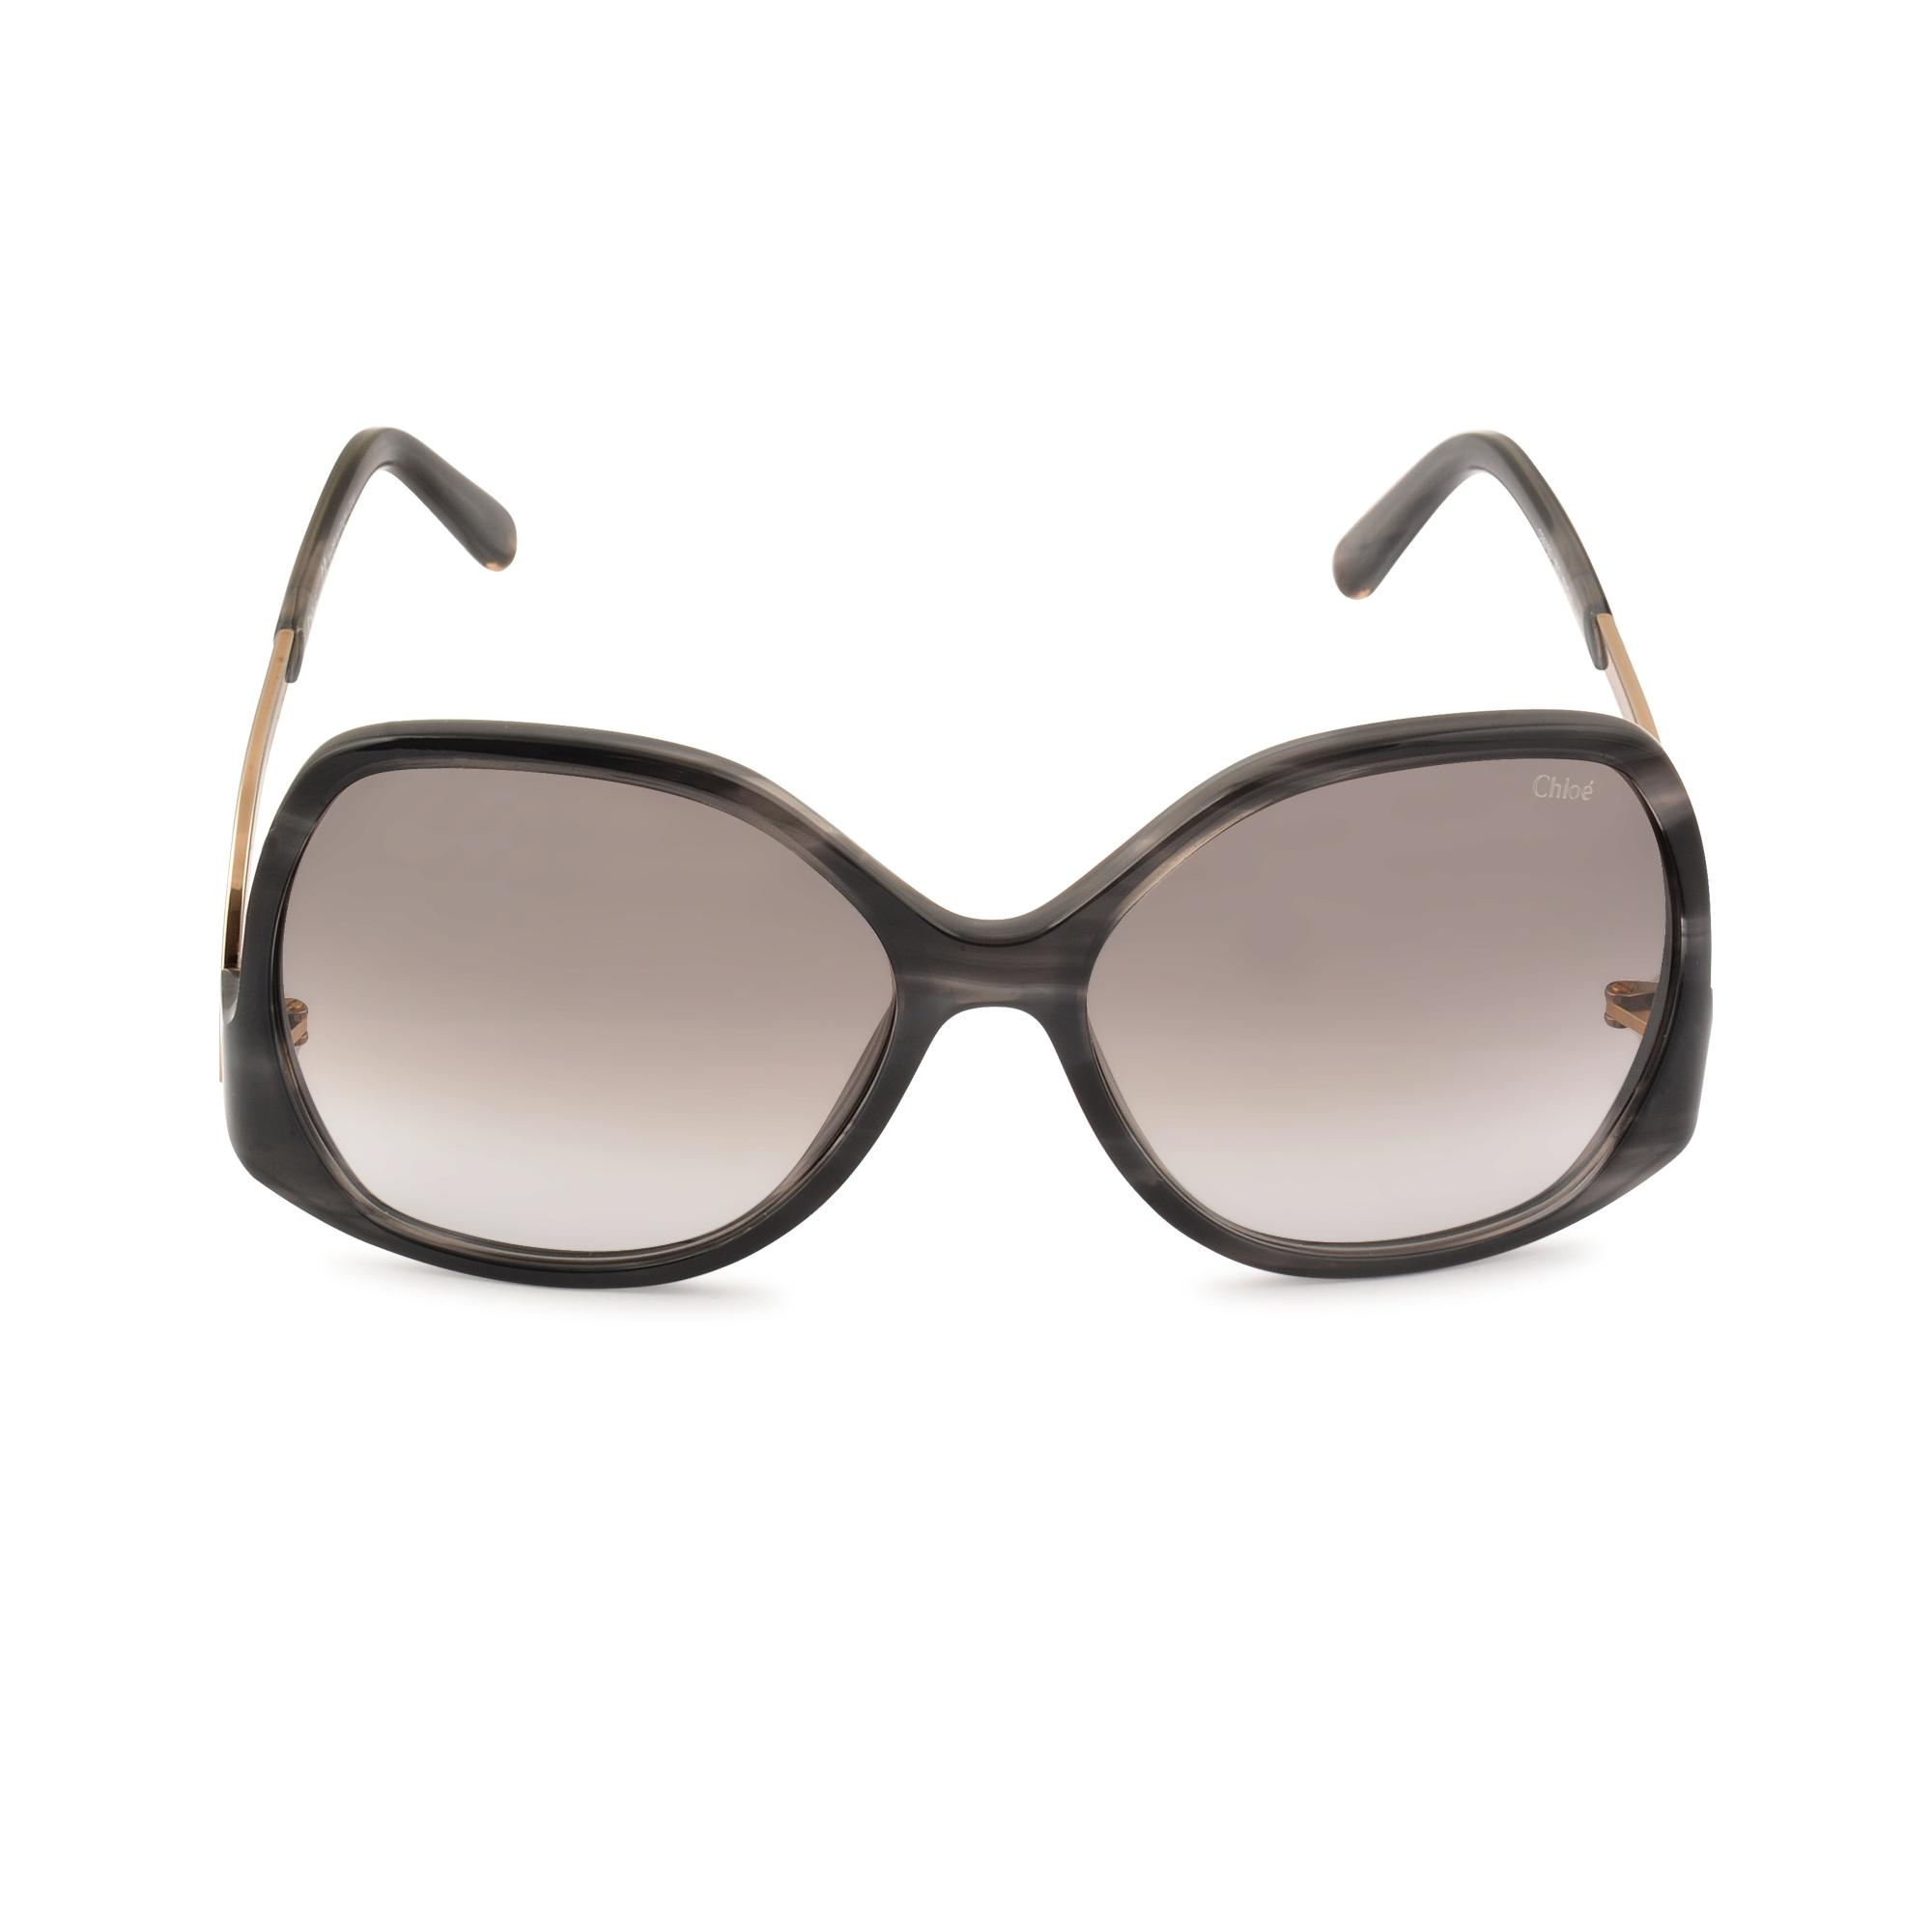 Chloé Ce675s Sunglasses in Grey